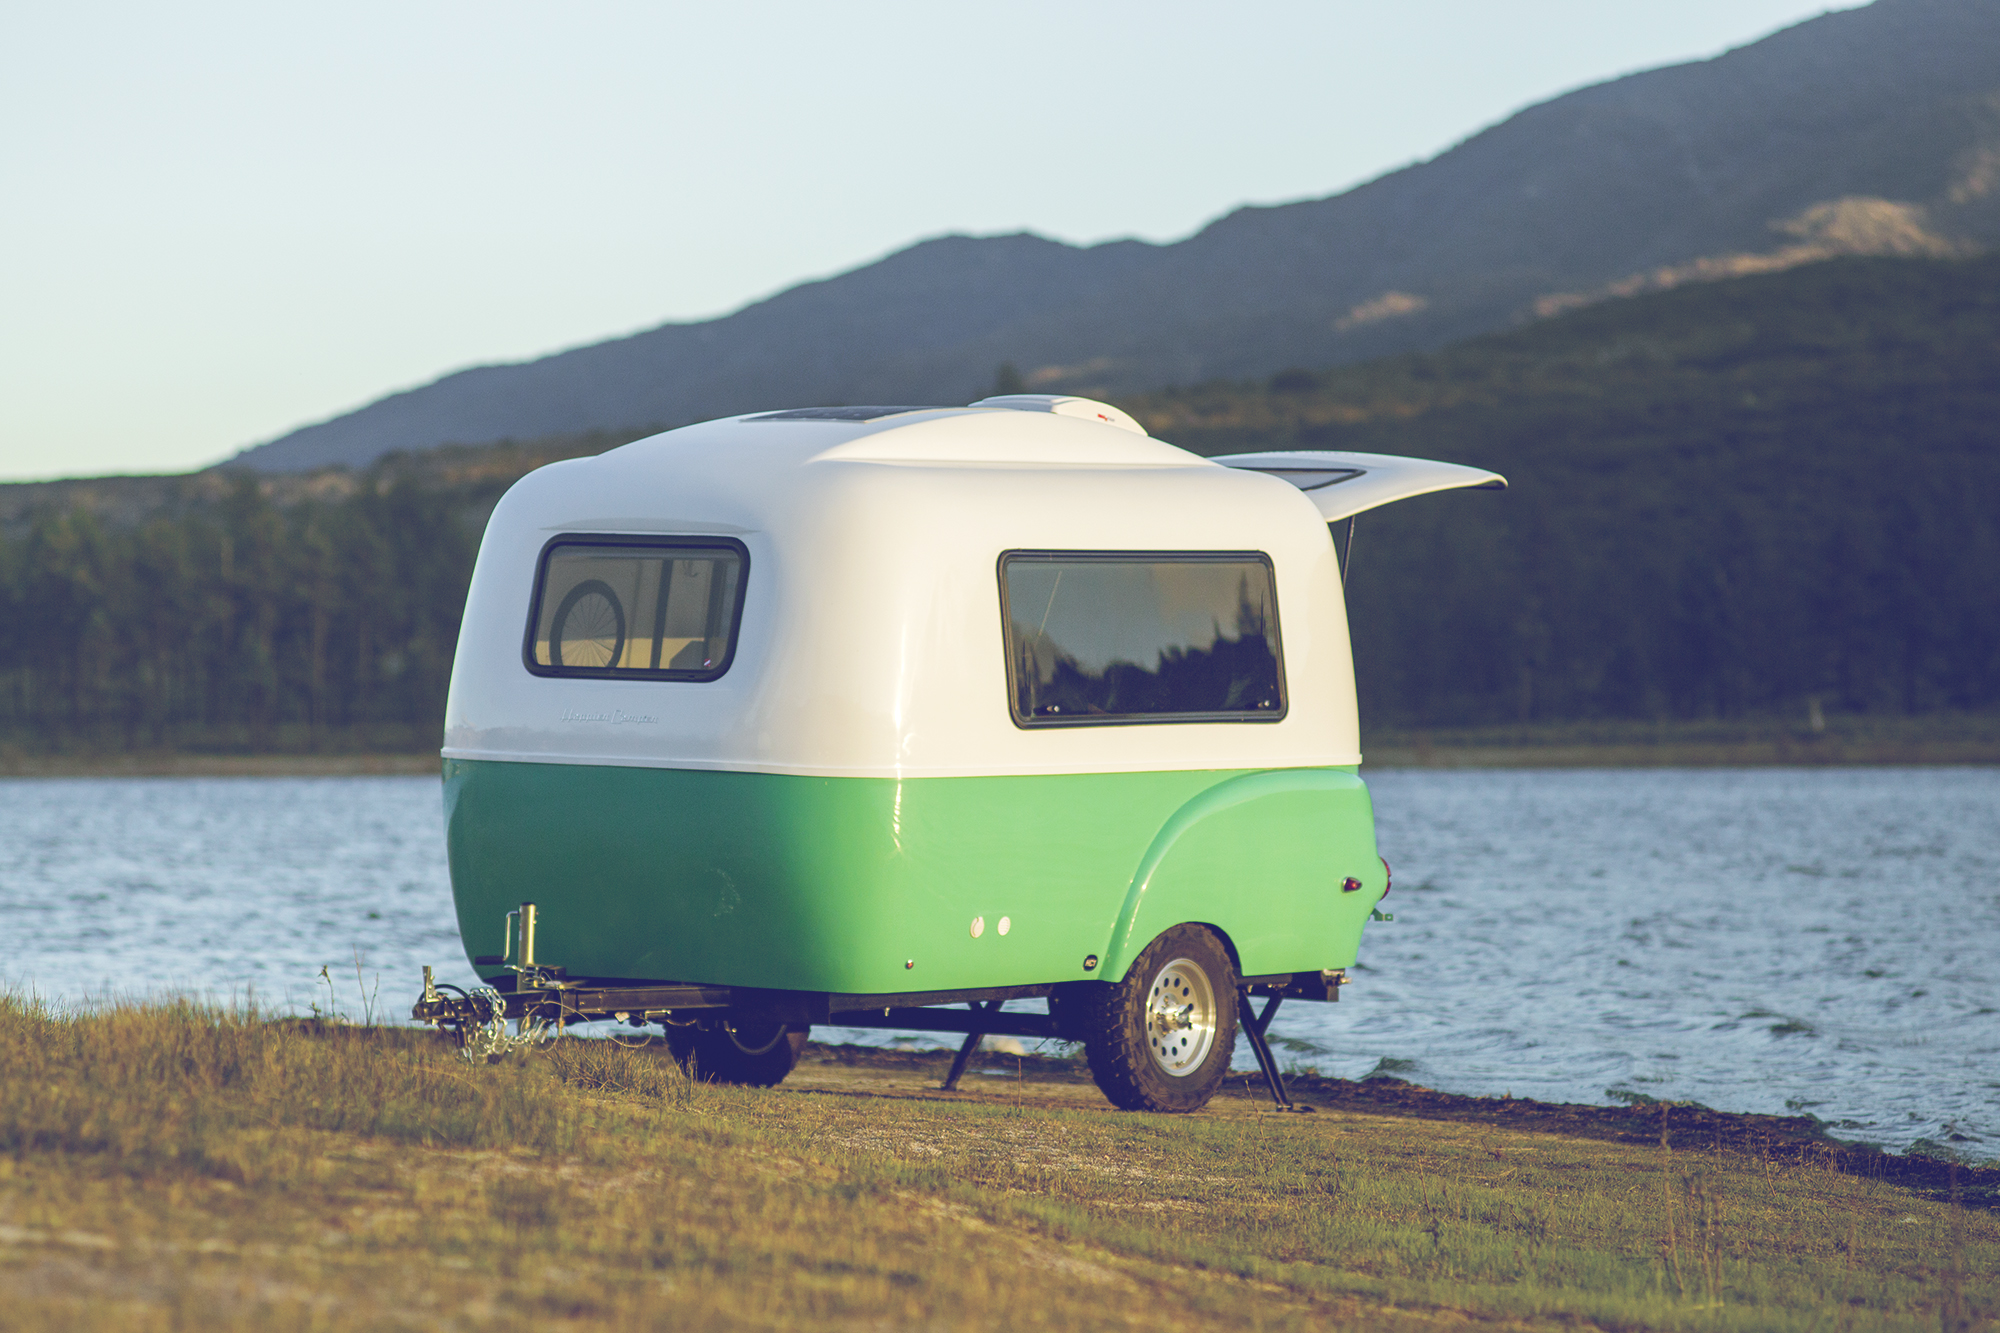 A vintage-styled fiberglass camping trailer in white and green sits in front of a lake.